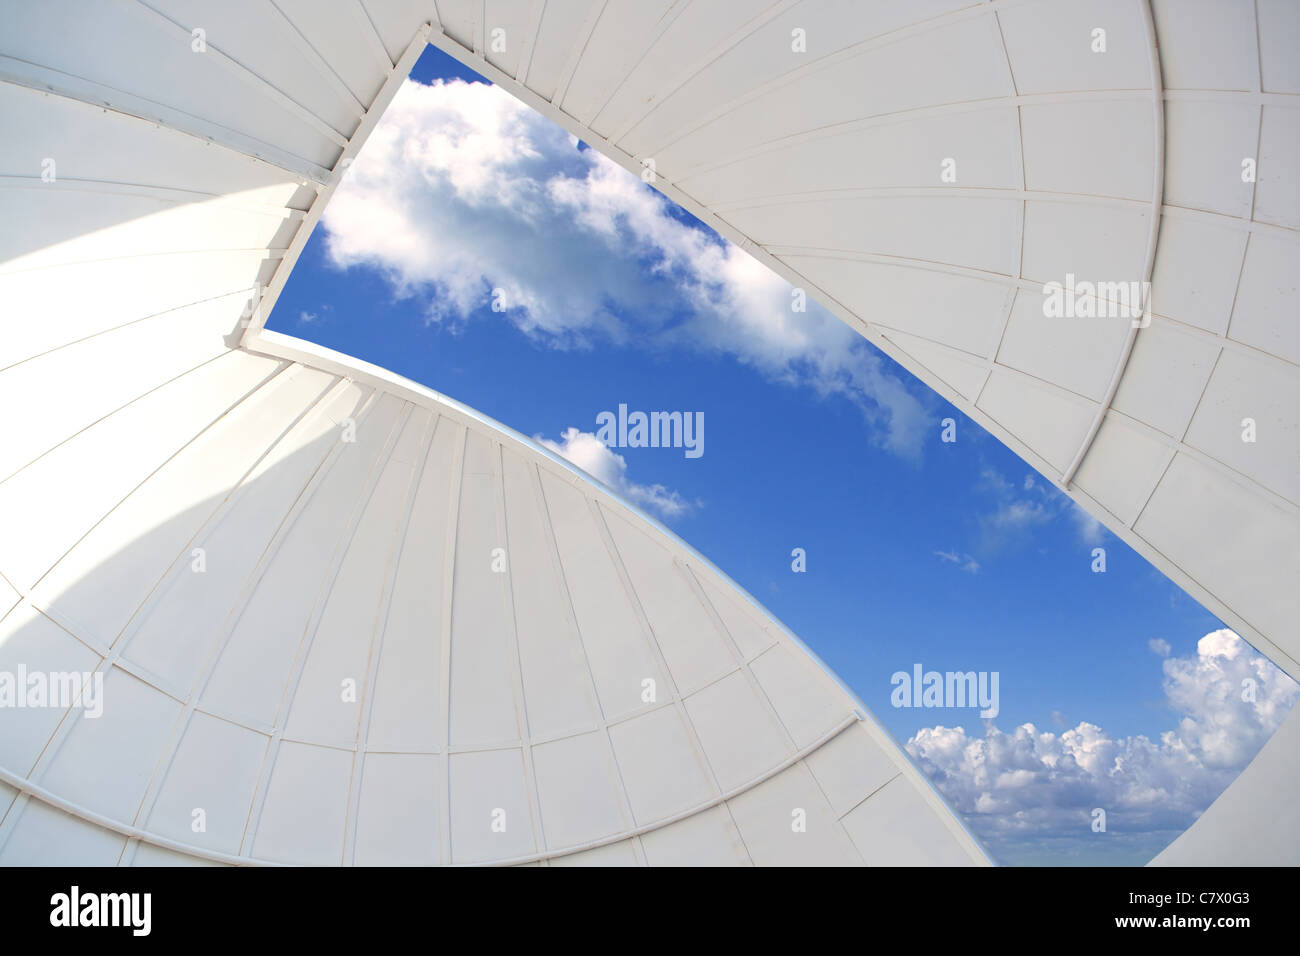 astronomical observatory indoor white dome blue sky window - Stock Image